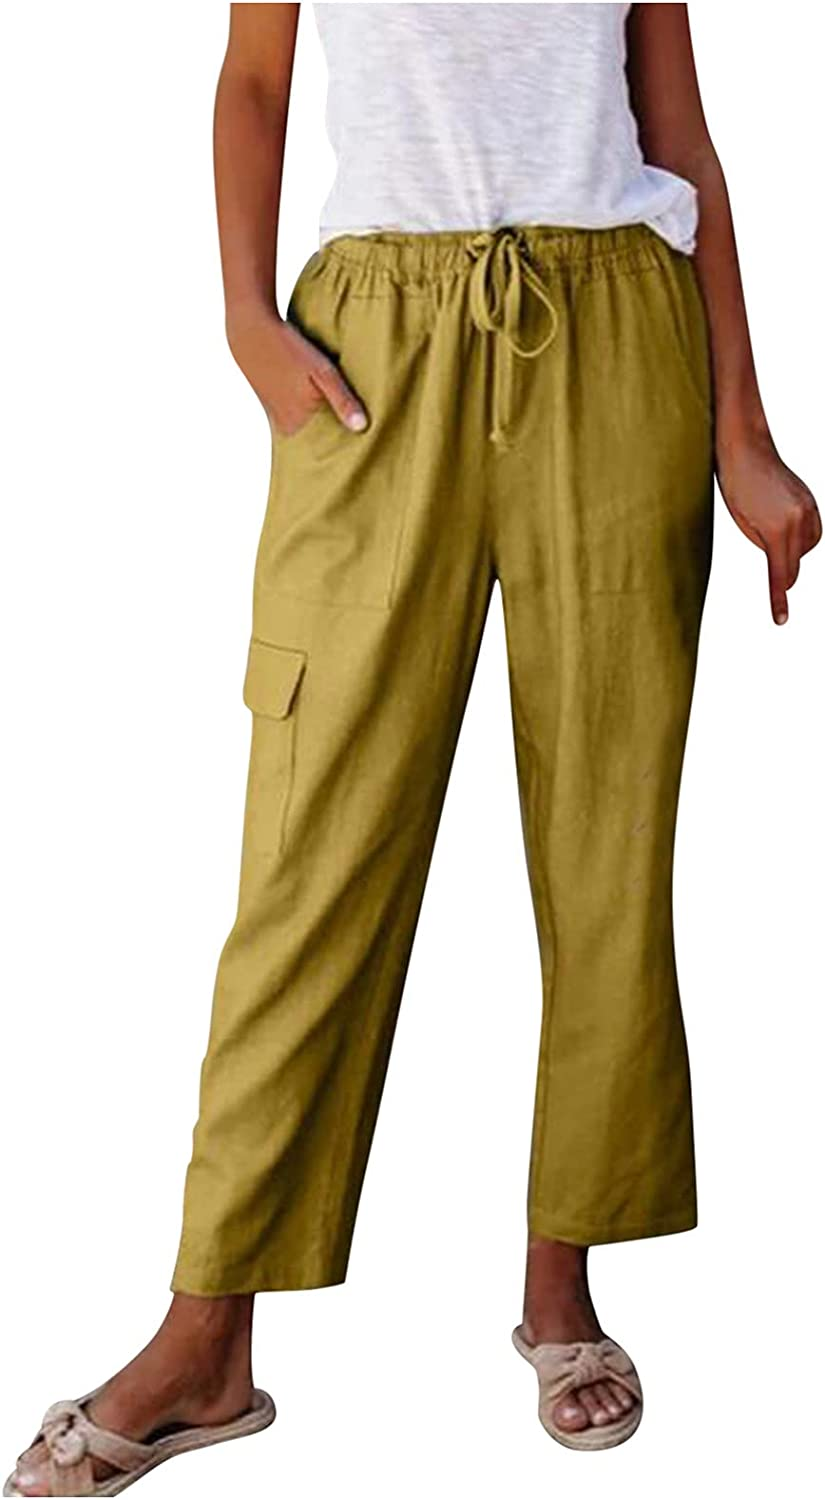 Women's Linen Pants Solid Color Loose Straight Leg Drawstring Waist Casual Pants Cotton Soft Trousers with Pockets